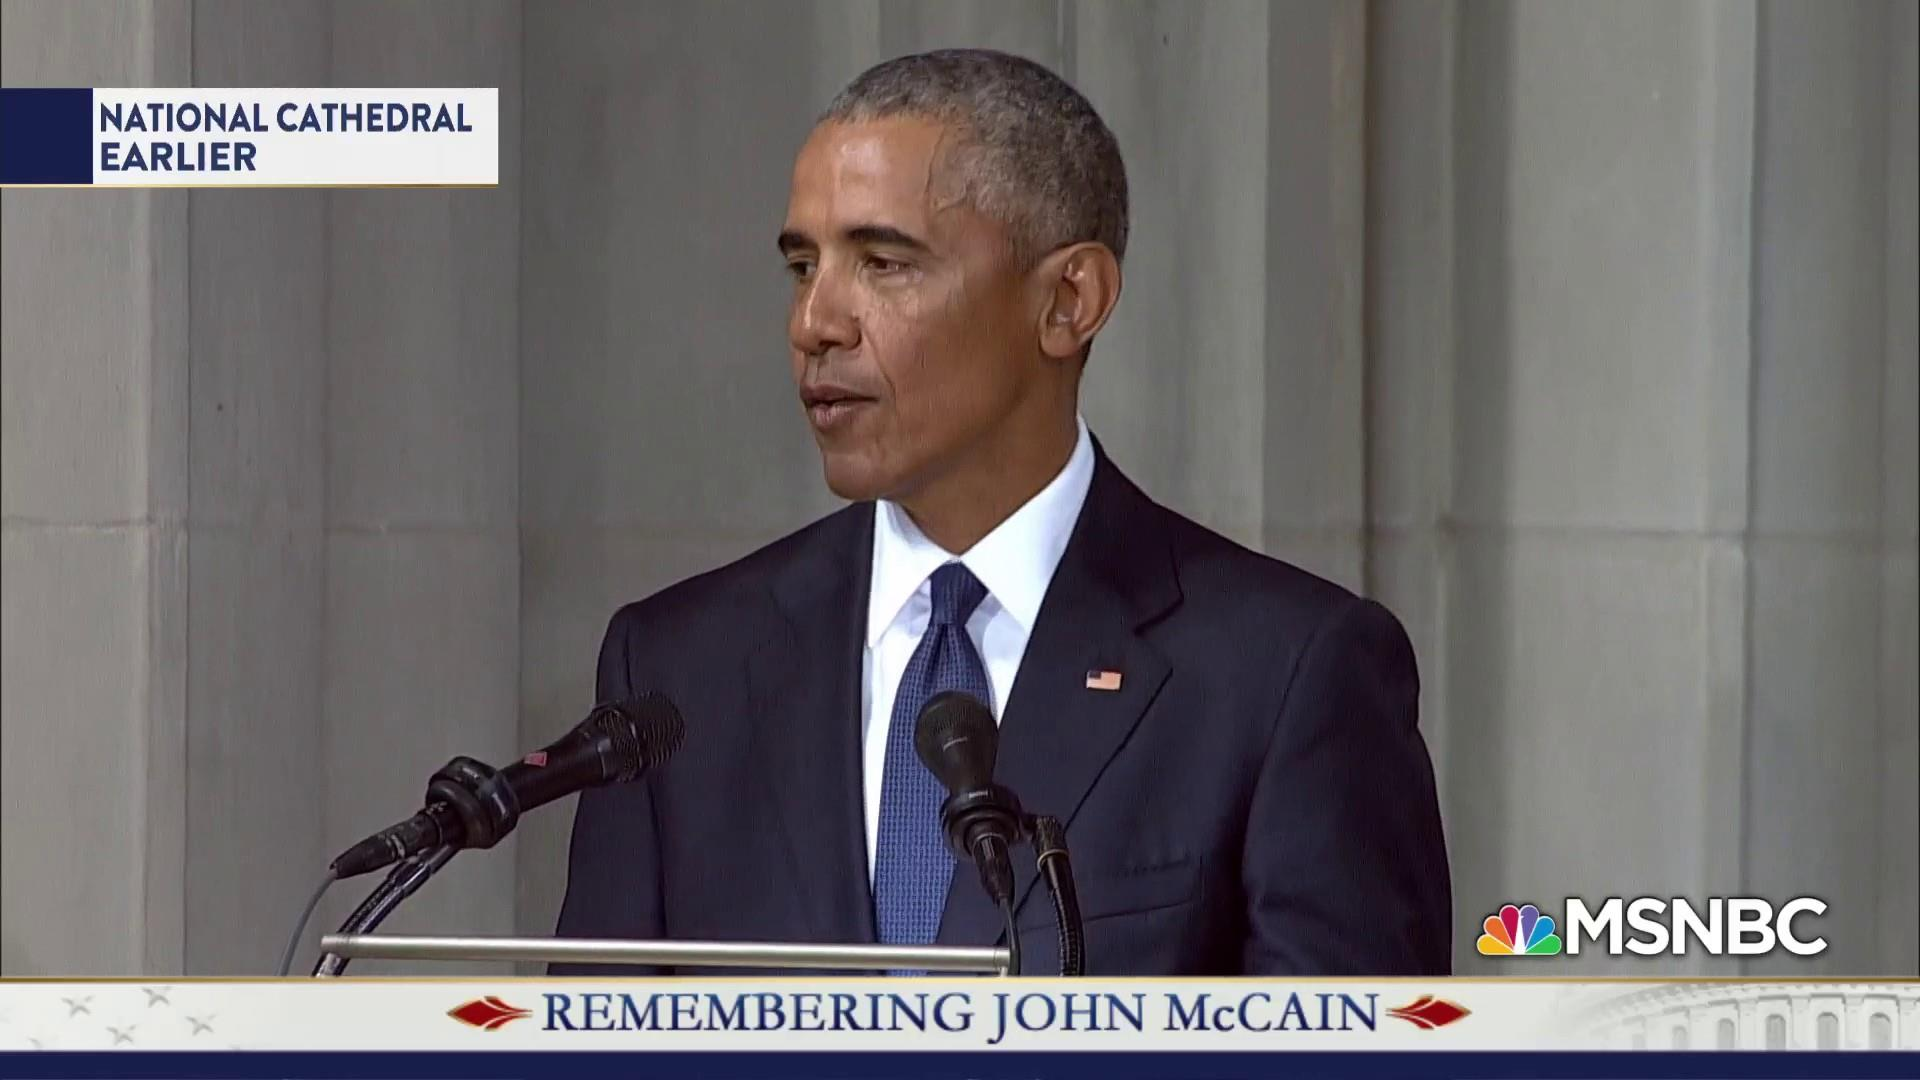 Obama on McCain: When all was said and done, we were on same team